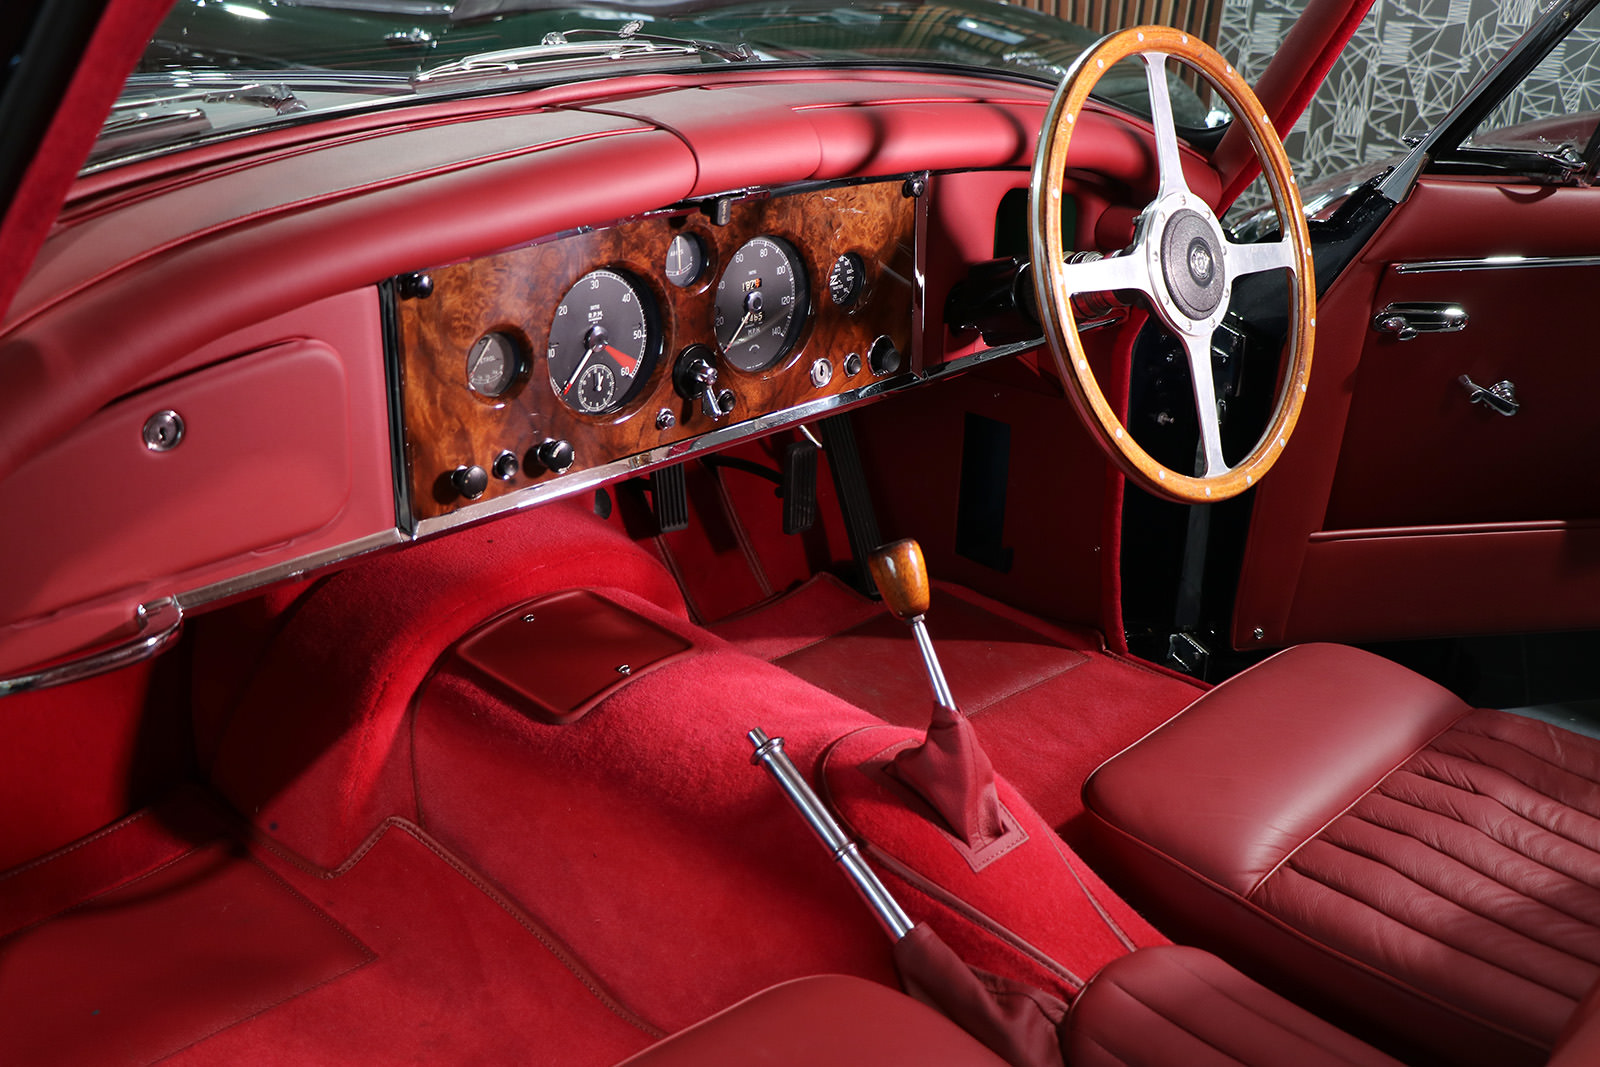 Jaguar_xk150_1959_sayer selection_wilkinson_blue_red_web_18.jpg